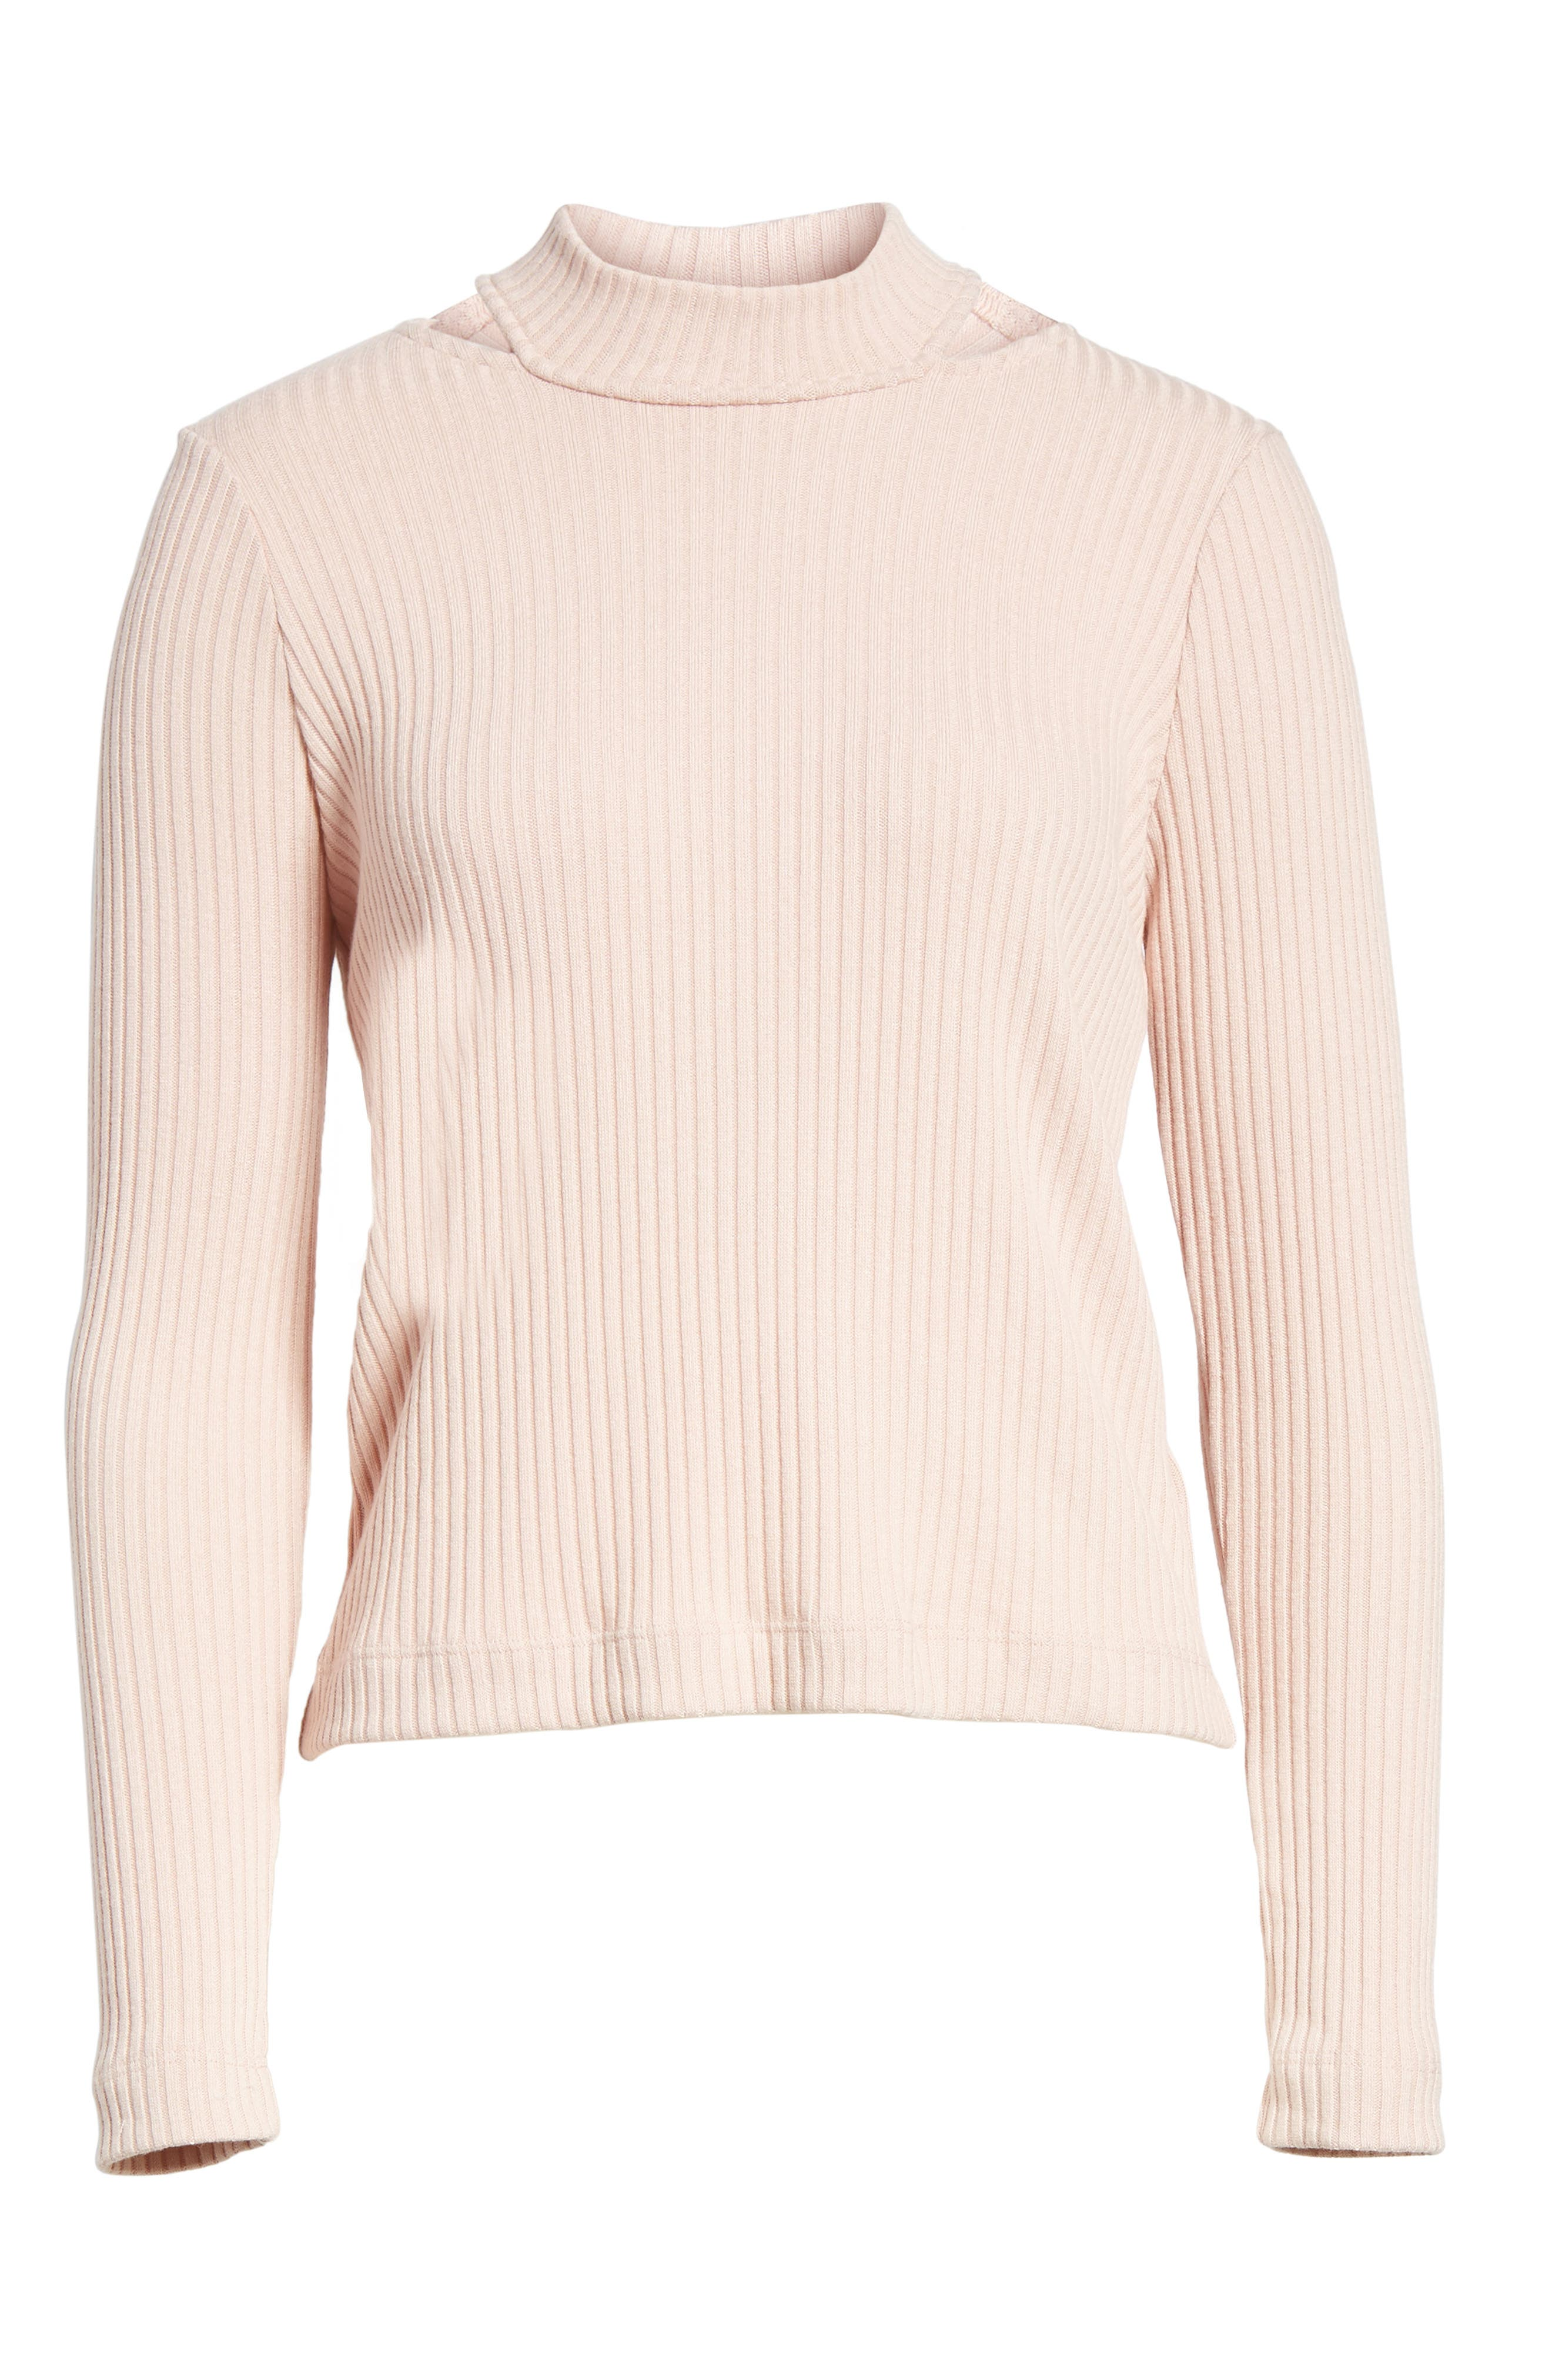 Sylvie Ribbed Mock Neck Sweater,                             Alternate thumbnail 6, color,                             688